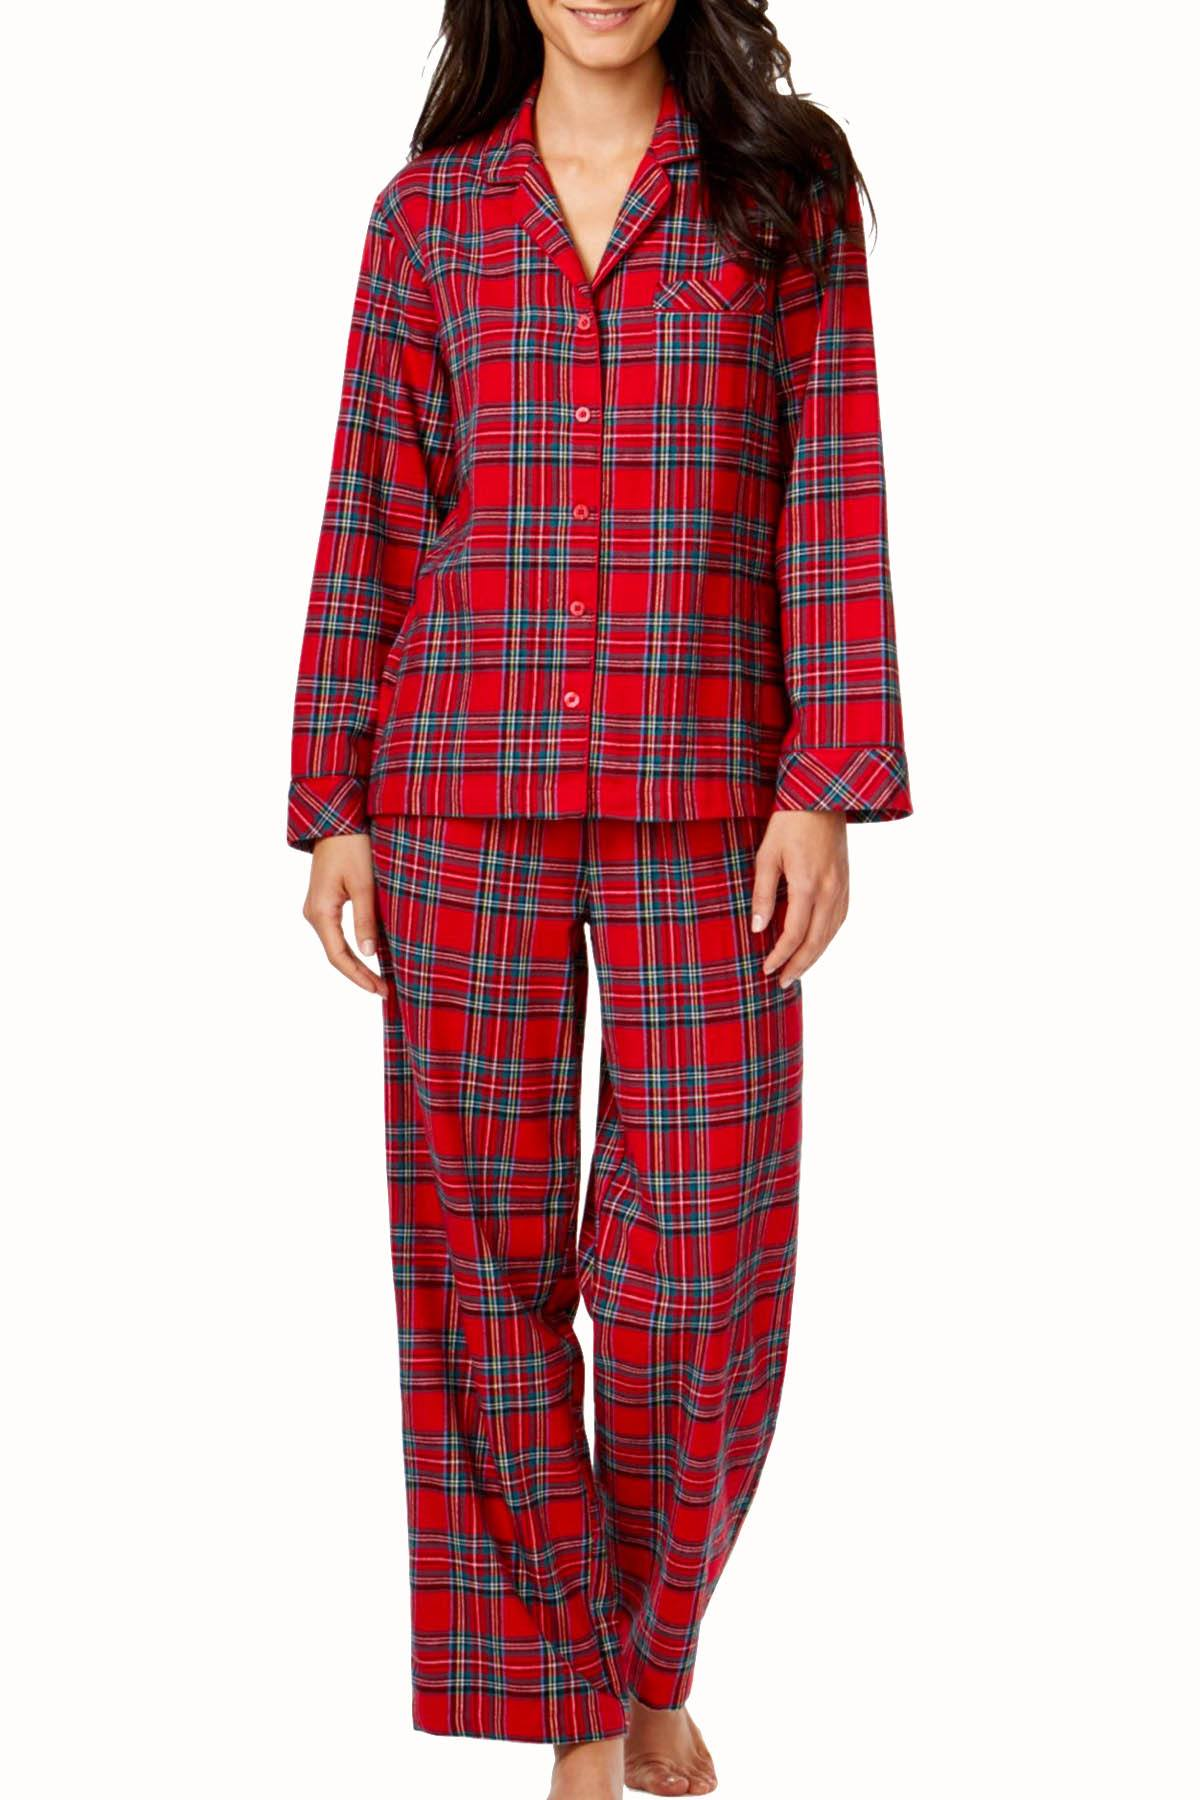 Charter Club Intimates Red Brinkley Plaid Pajama 2-Piece Set